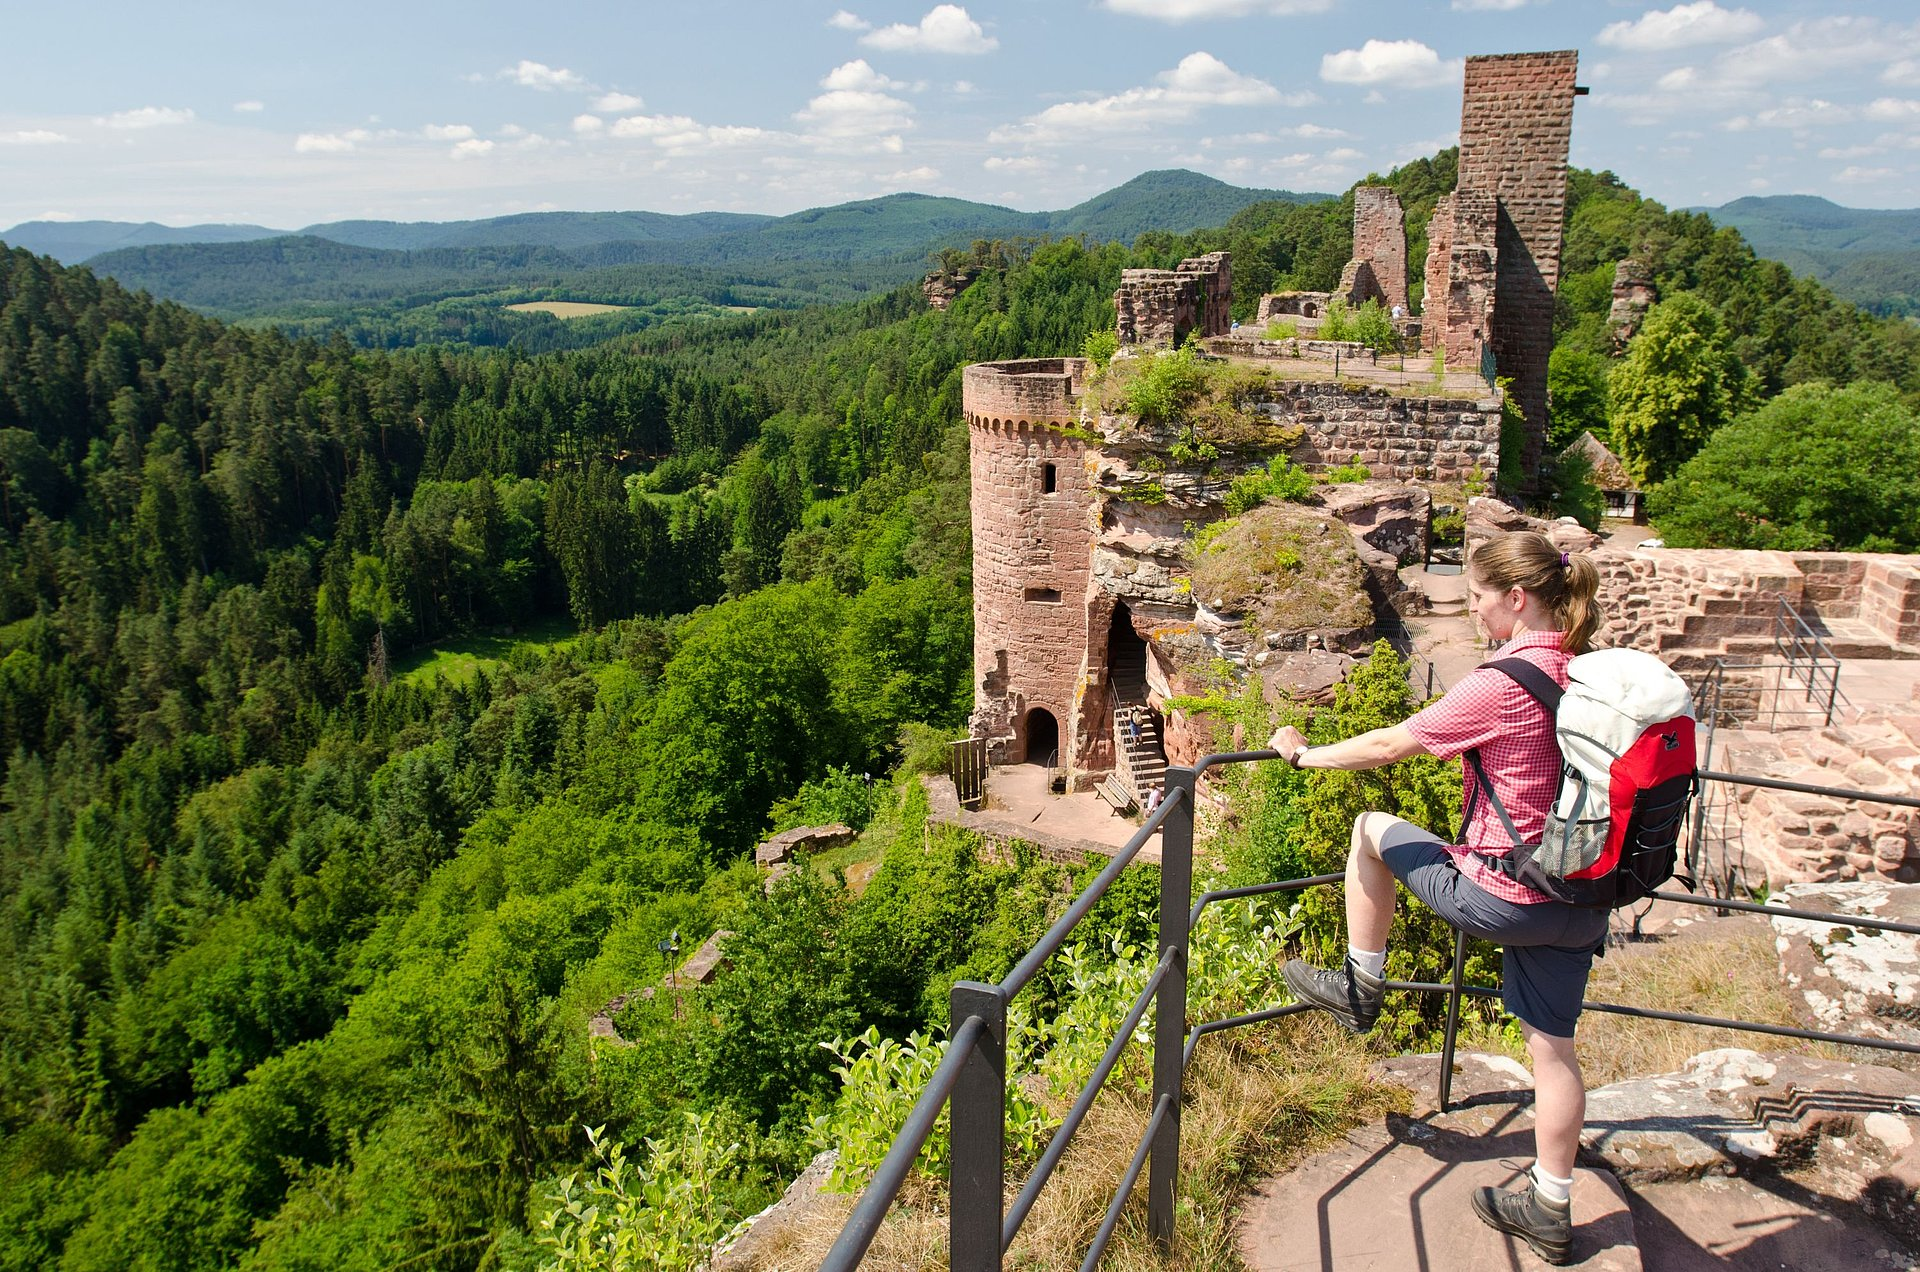 Hikers at the ruin of Alt-Dahn in Palatine Forest, Palatinate